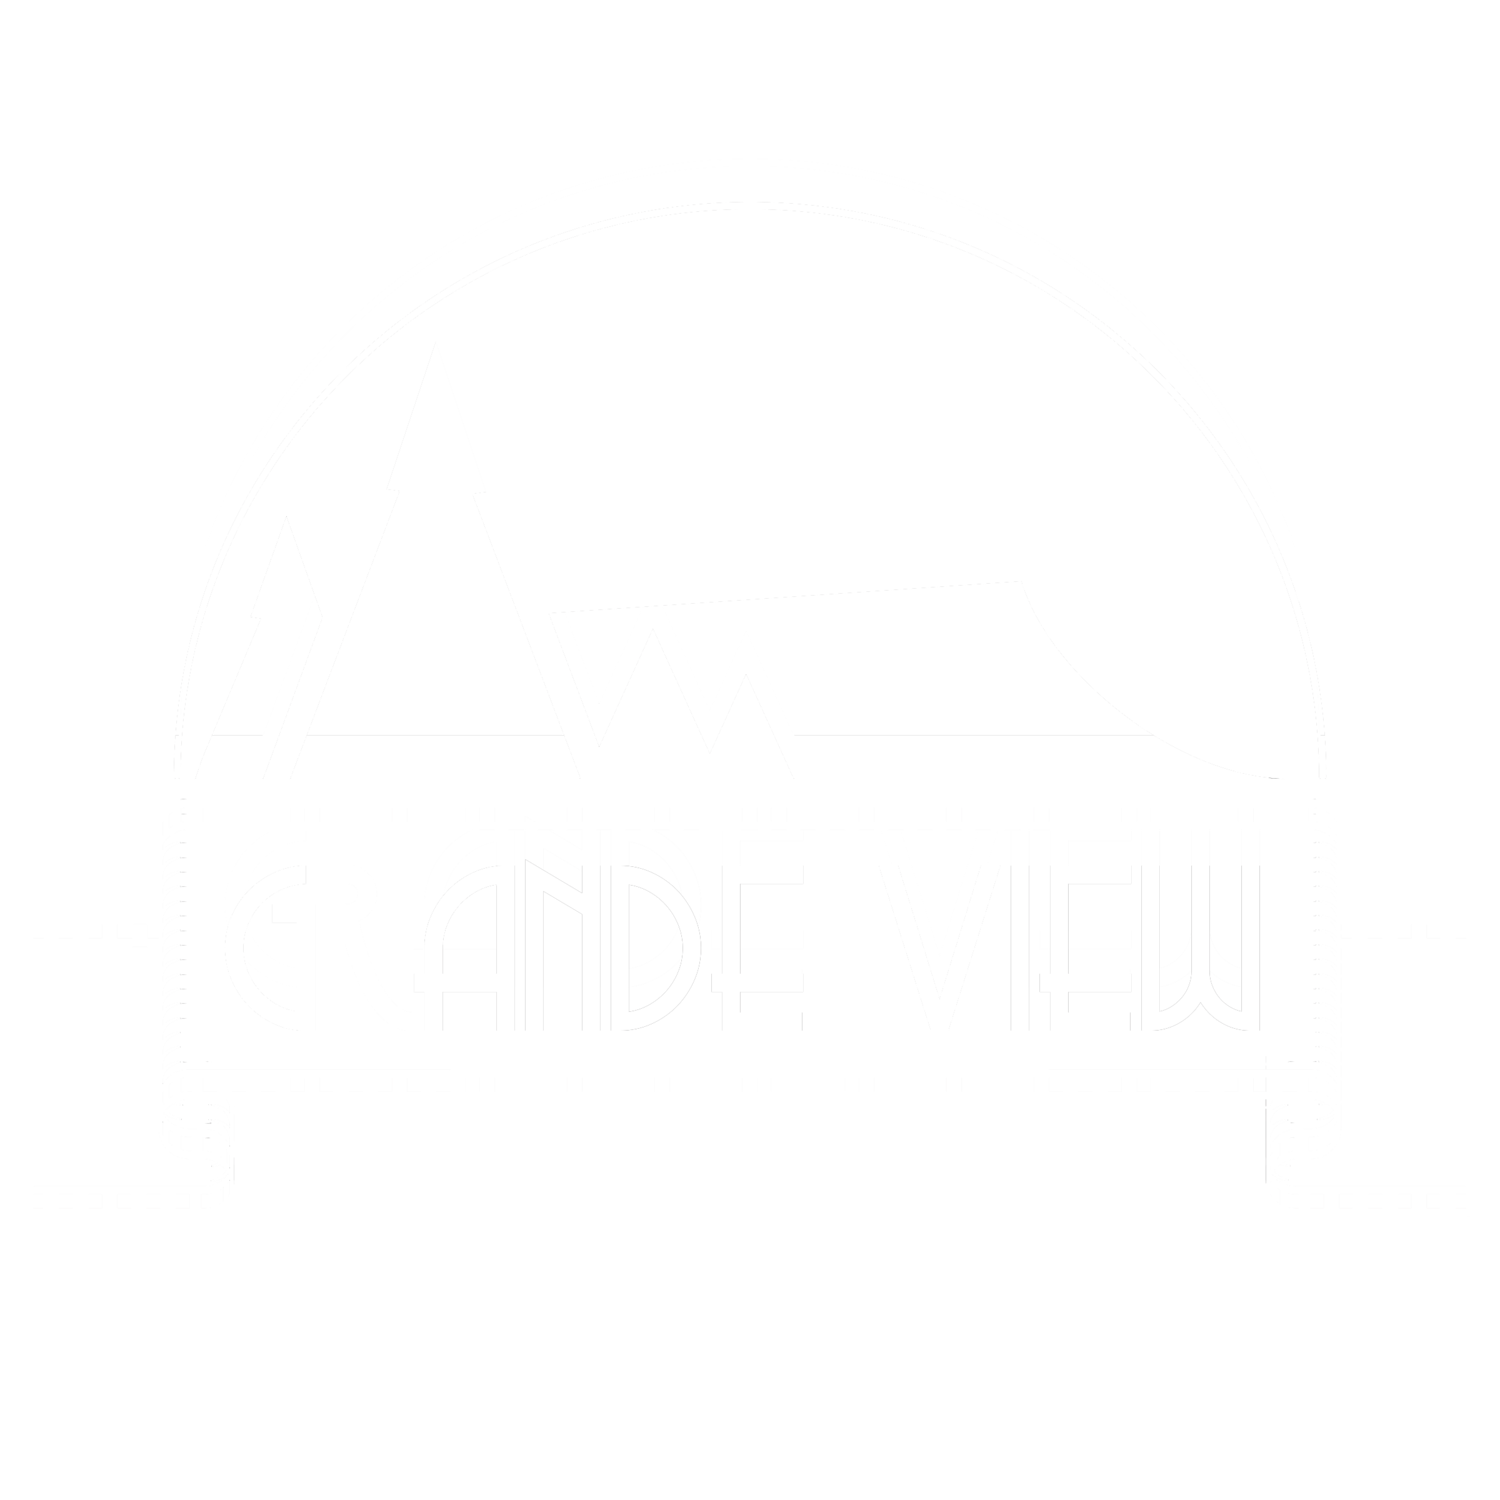 Grande View Productions